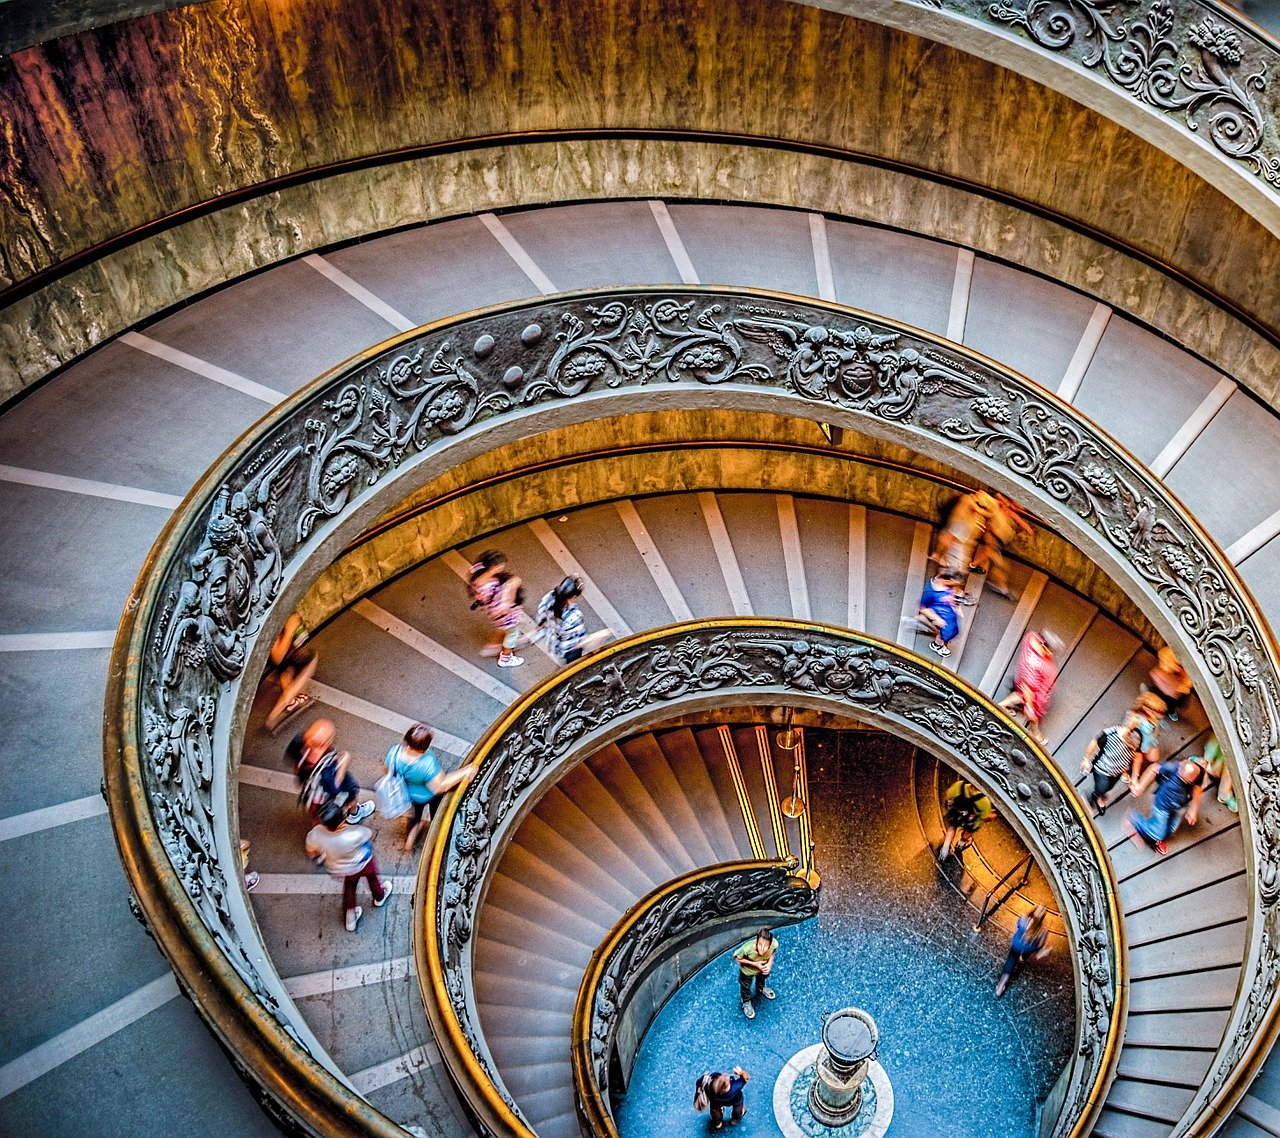 Include the Vatican Museum on your Rome trip